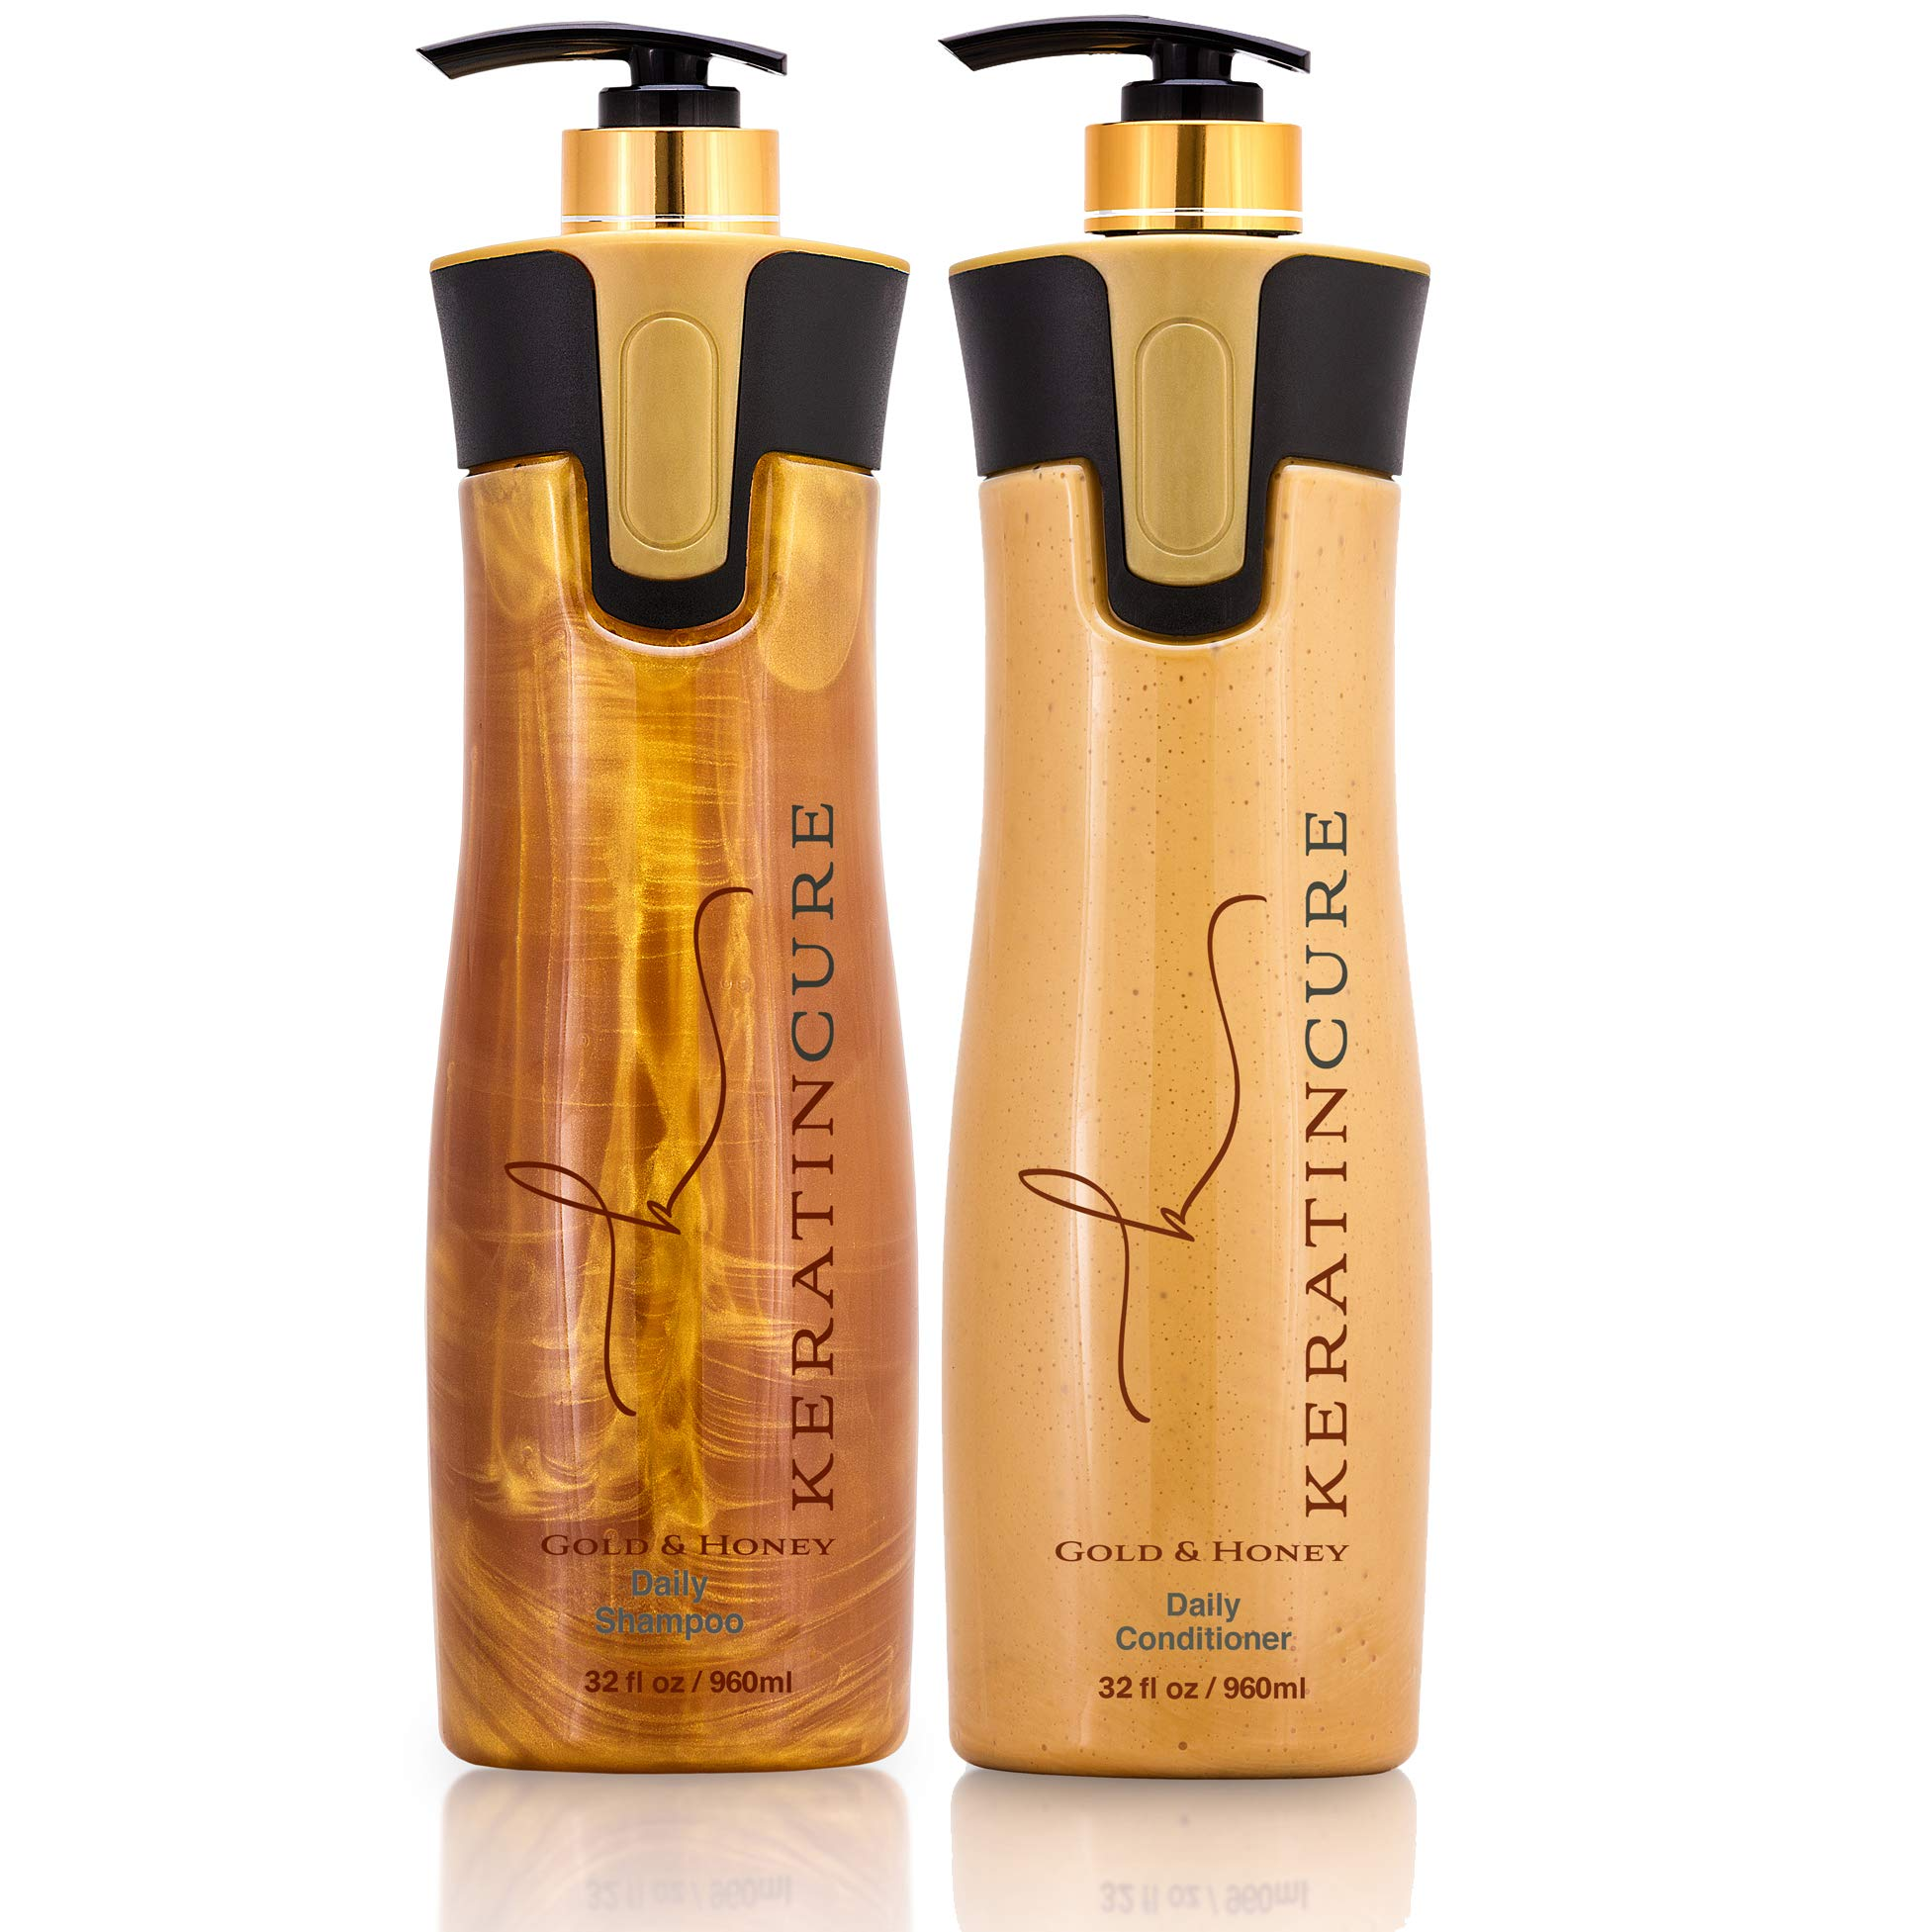 Keratin Cure Brazilian Gold and Honey daily use Shampoo Conditioner Set Bio with Argan oil SULFATE FREE protect Color Enhance Hair Growth (960ml/ 32 fl oz) for keratin treated hair by Keratin Cure